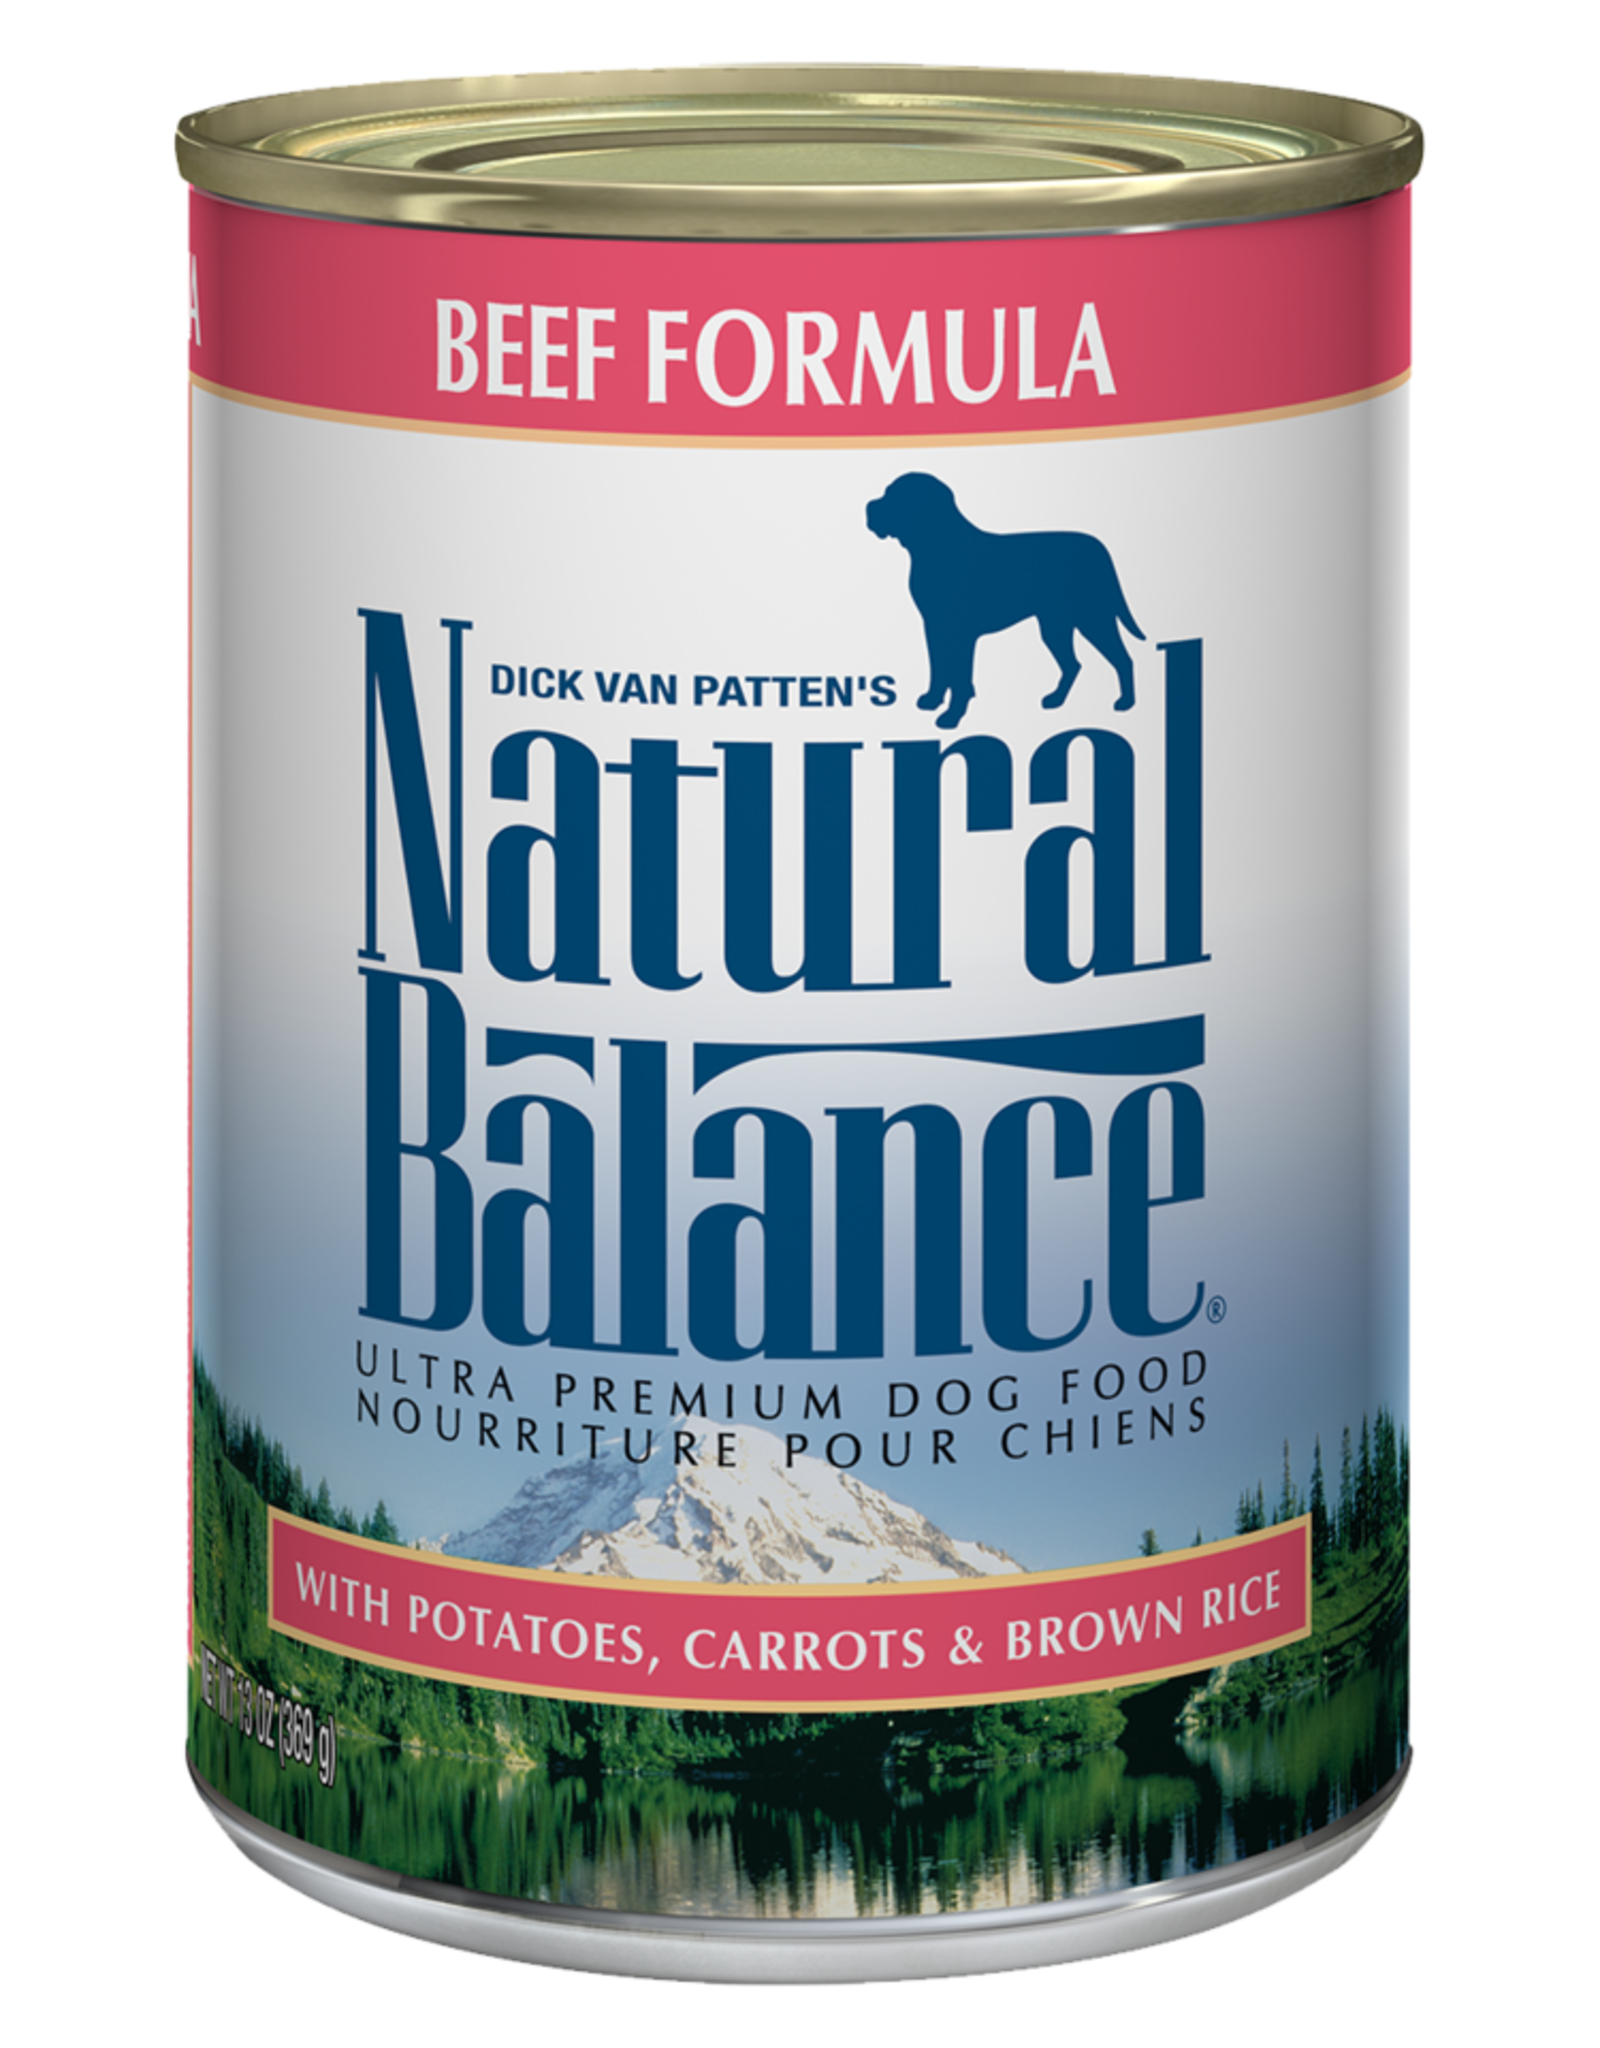 NATURAL BALANCE PET FOODS, INC NATURAL BALANCE DOG CAN BEEF FORMULA 13OZ